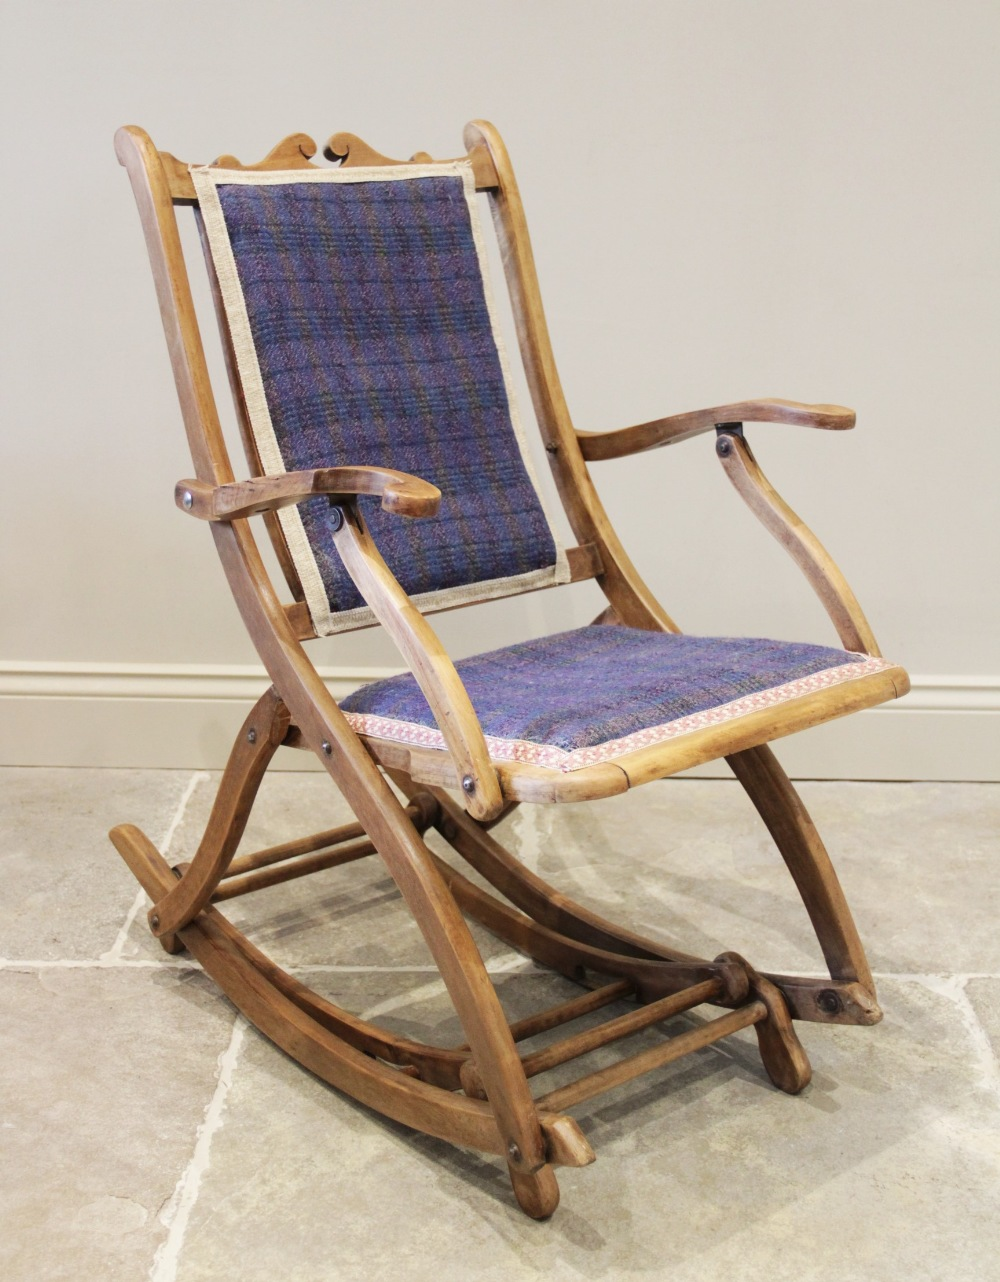 A late 19th century adjustable beech wood rocking chair, probably French, with a padded back rest